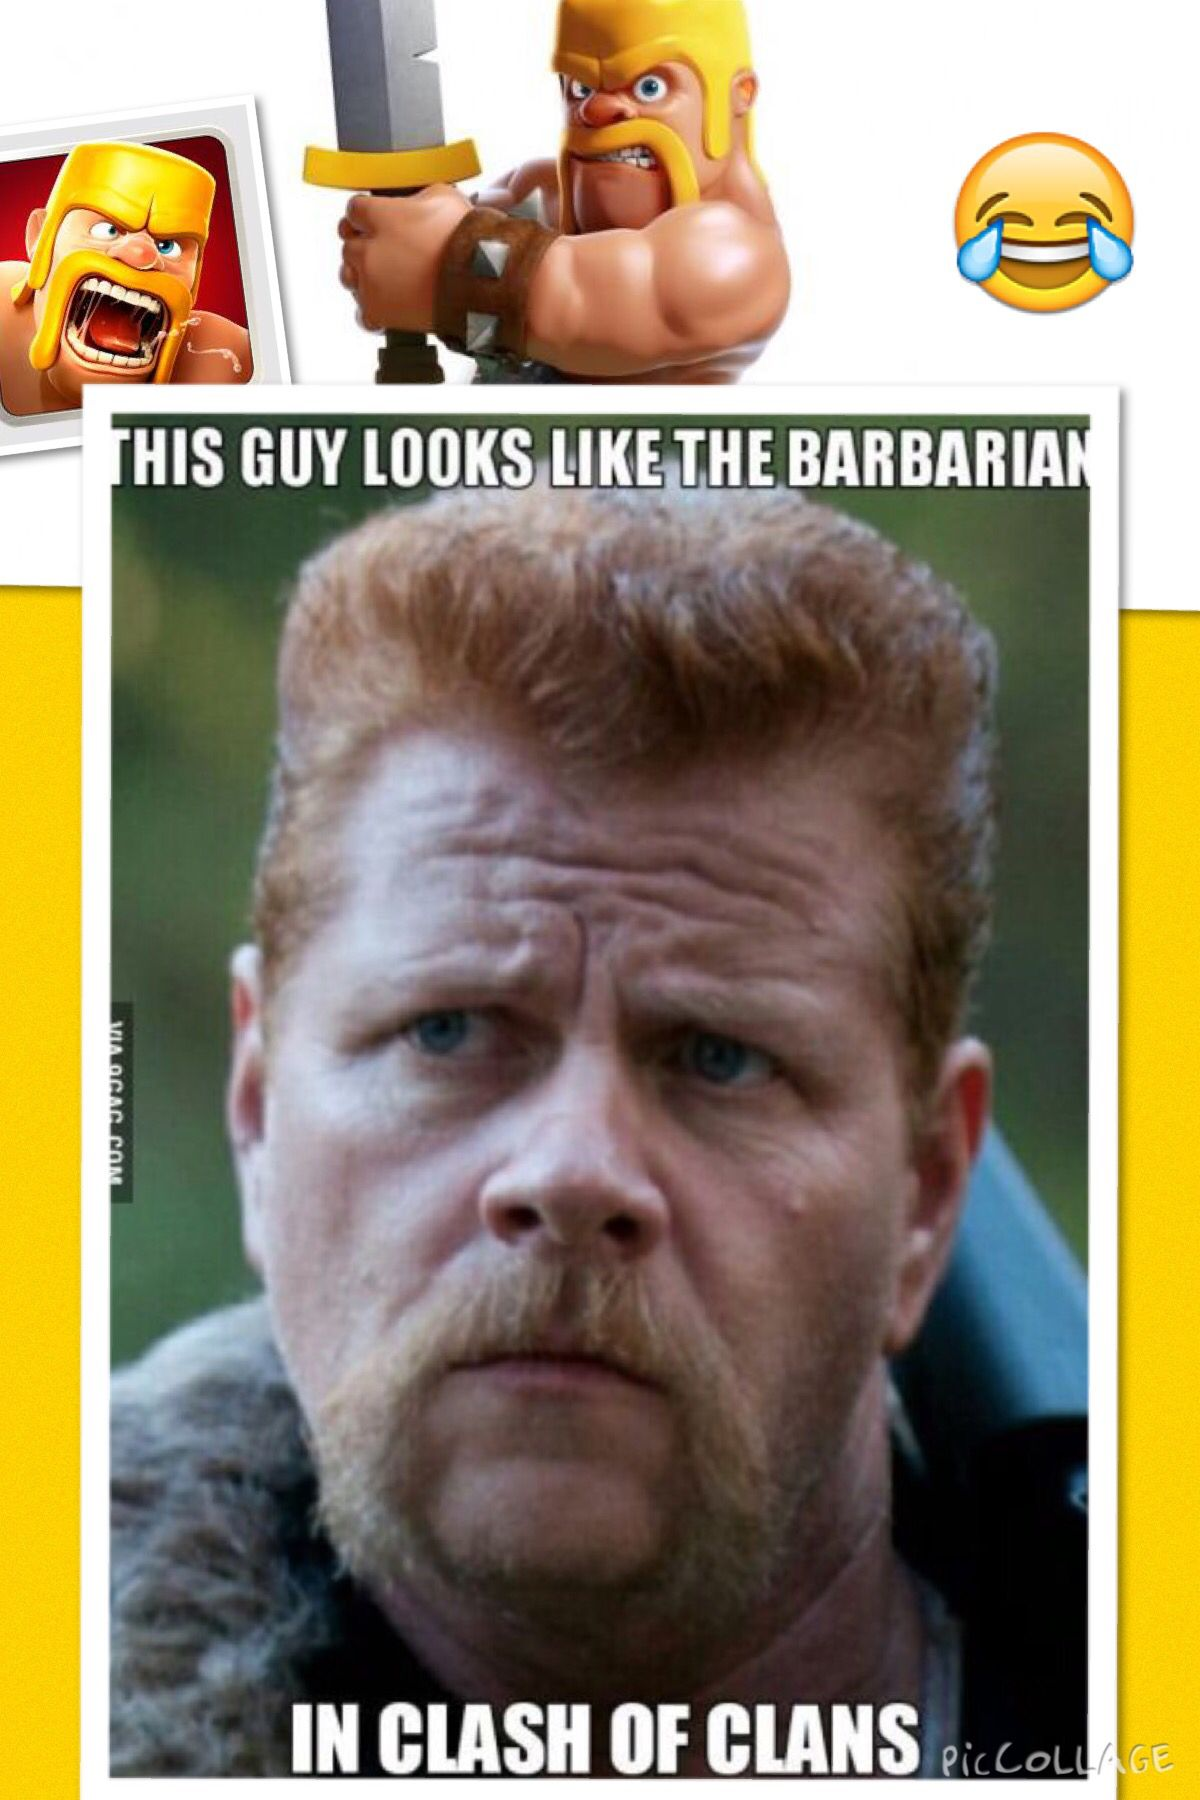 Clash of clans ! if they make a movie, this guys gotta be in it!